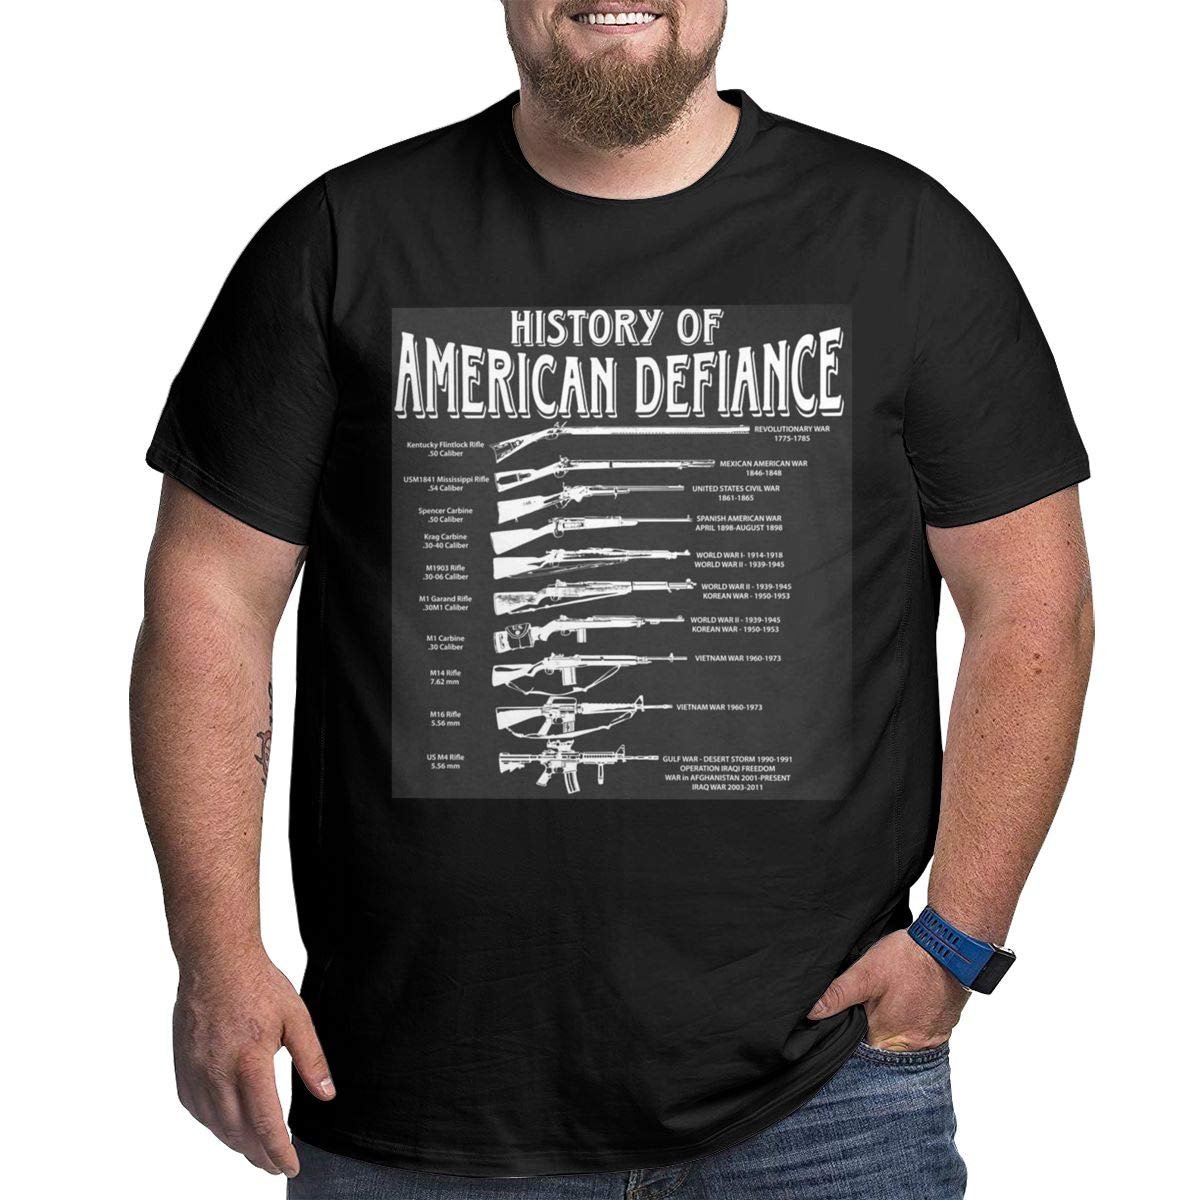 History of American Defiance Black Solid Plus Size Mens Cross Train Loose Plus Size T Shirts